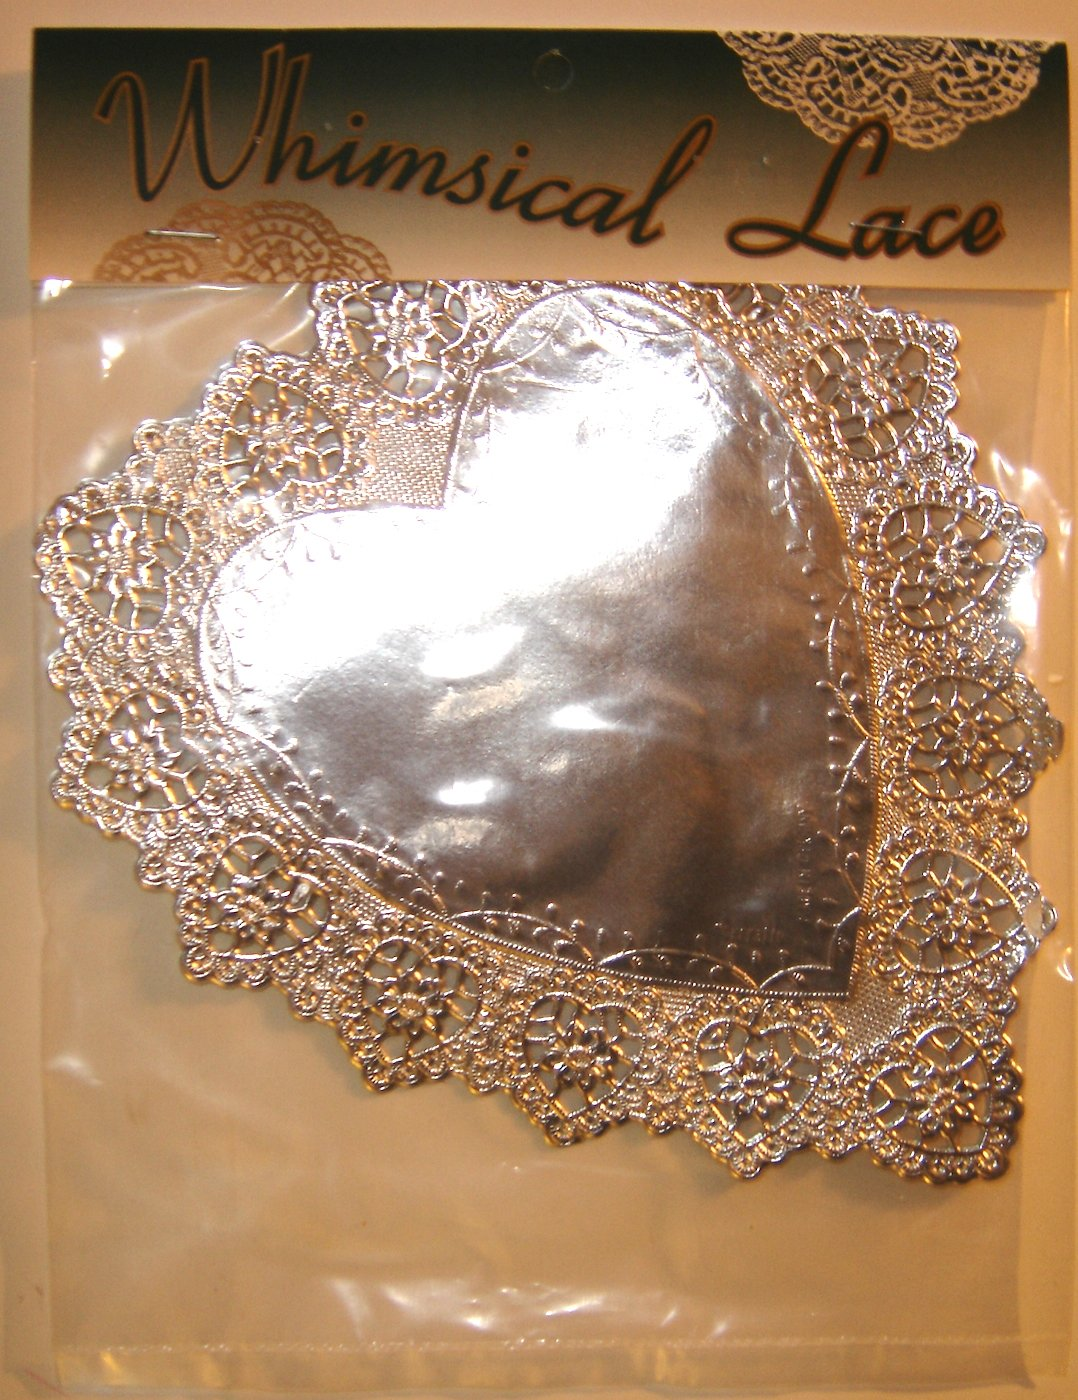 Whimsical Lace Silver Doilies, Sisson Imports, Made in Germany: HEARTS